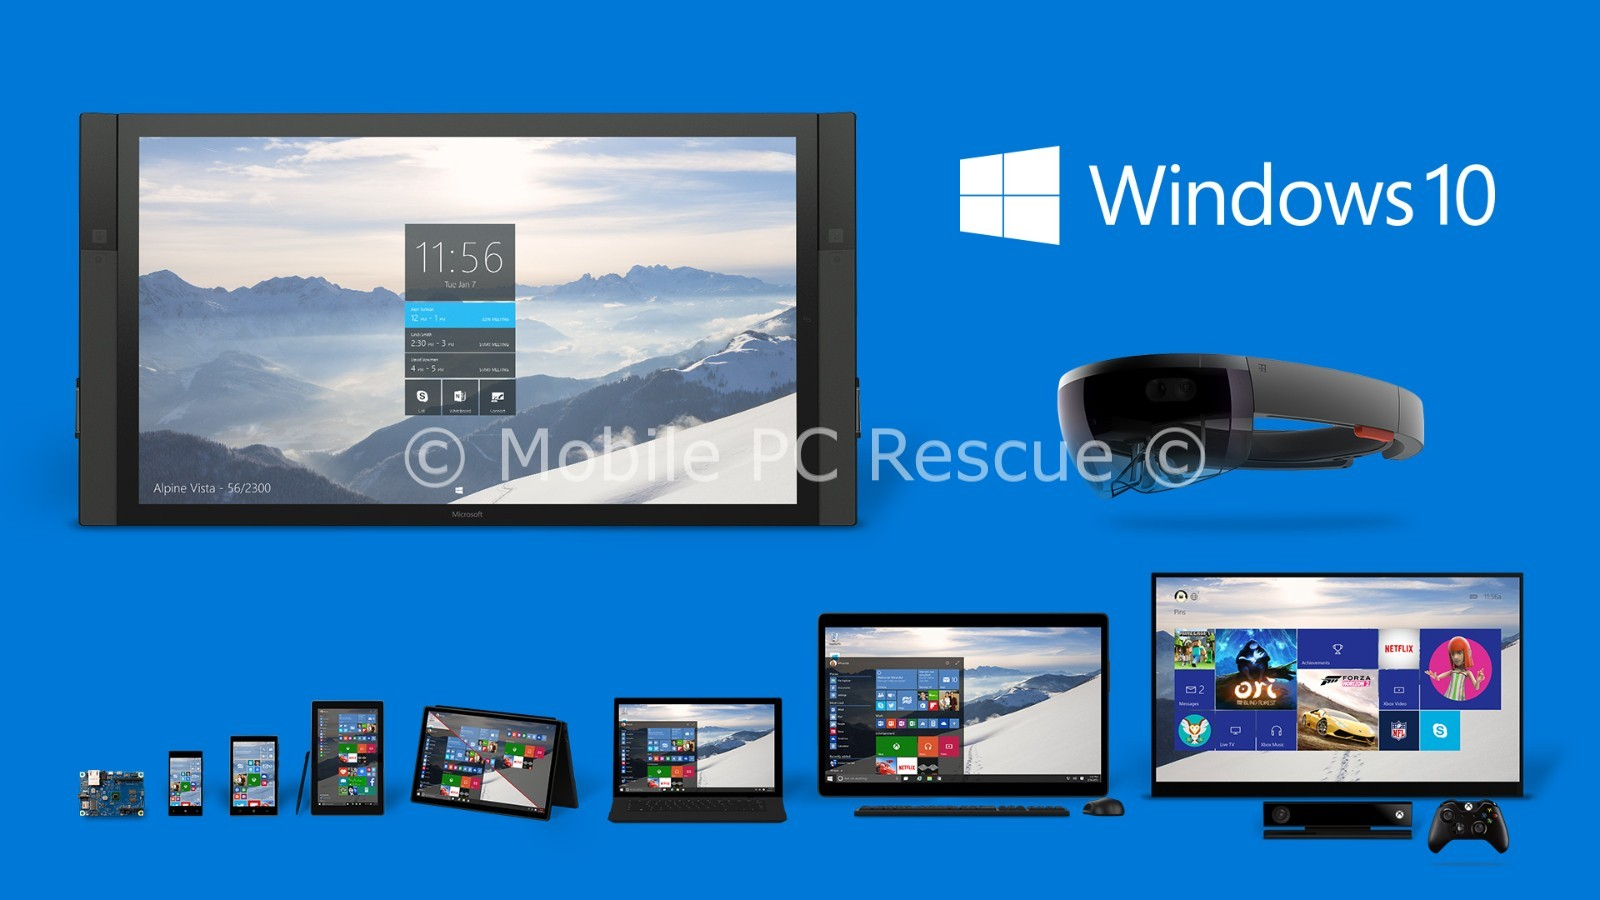 Windows 10 - Issues and fixes - ONGOING - Mobile PC Rescue